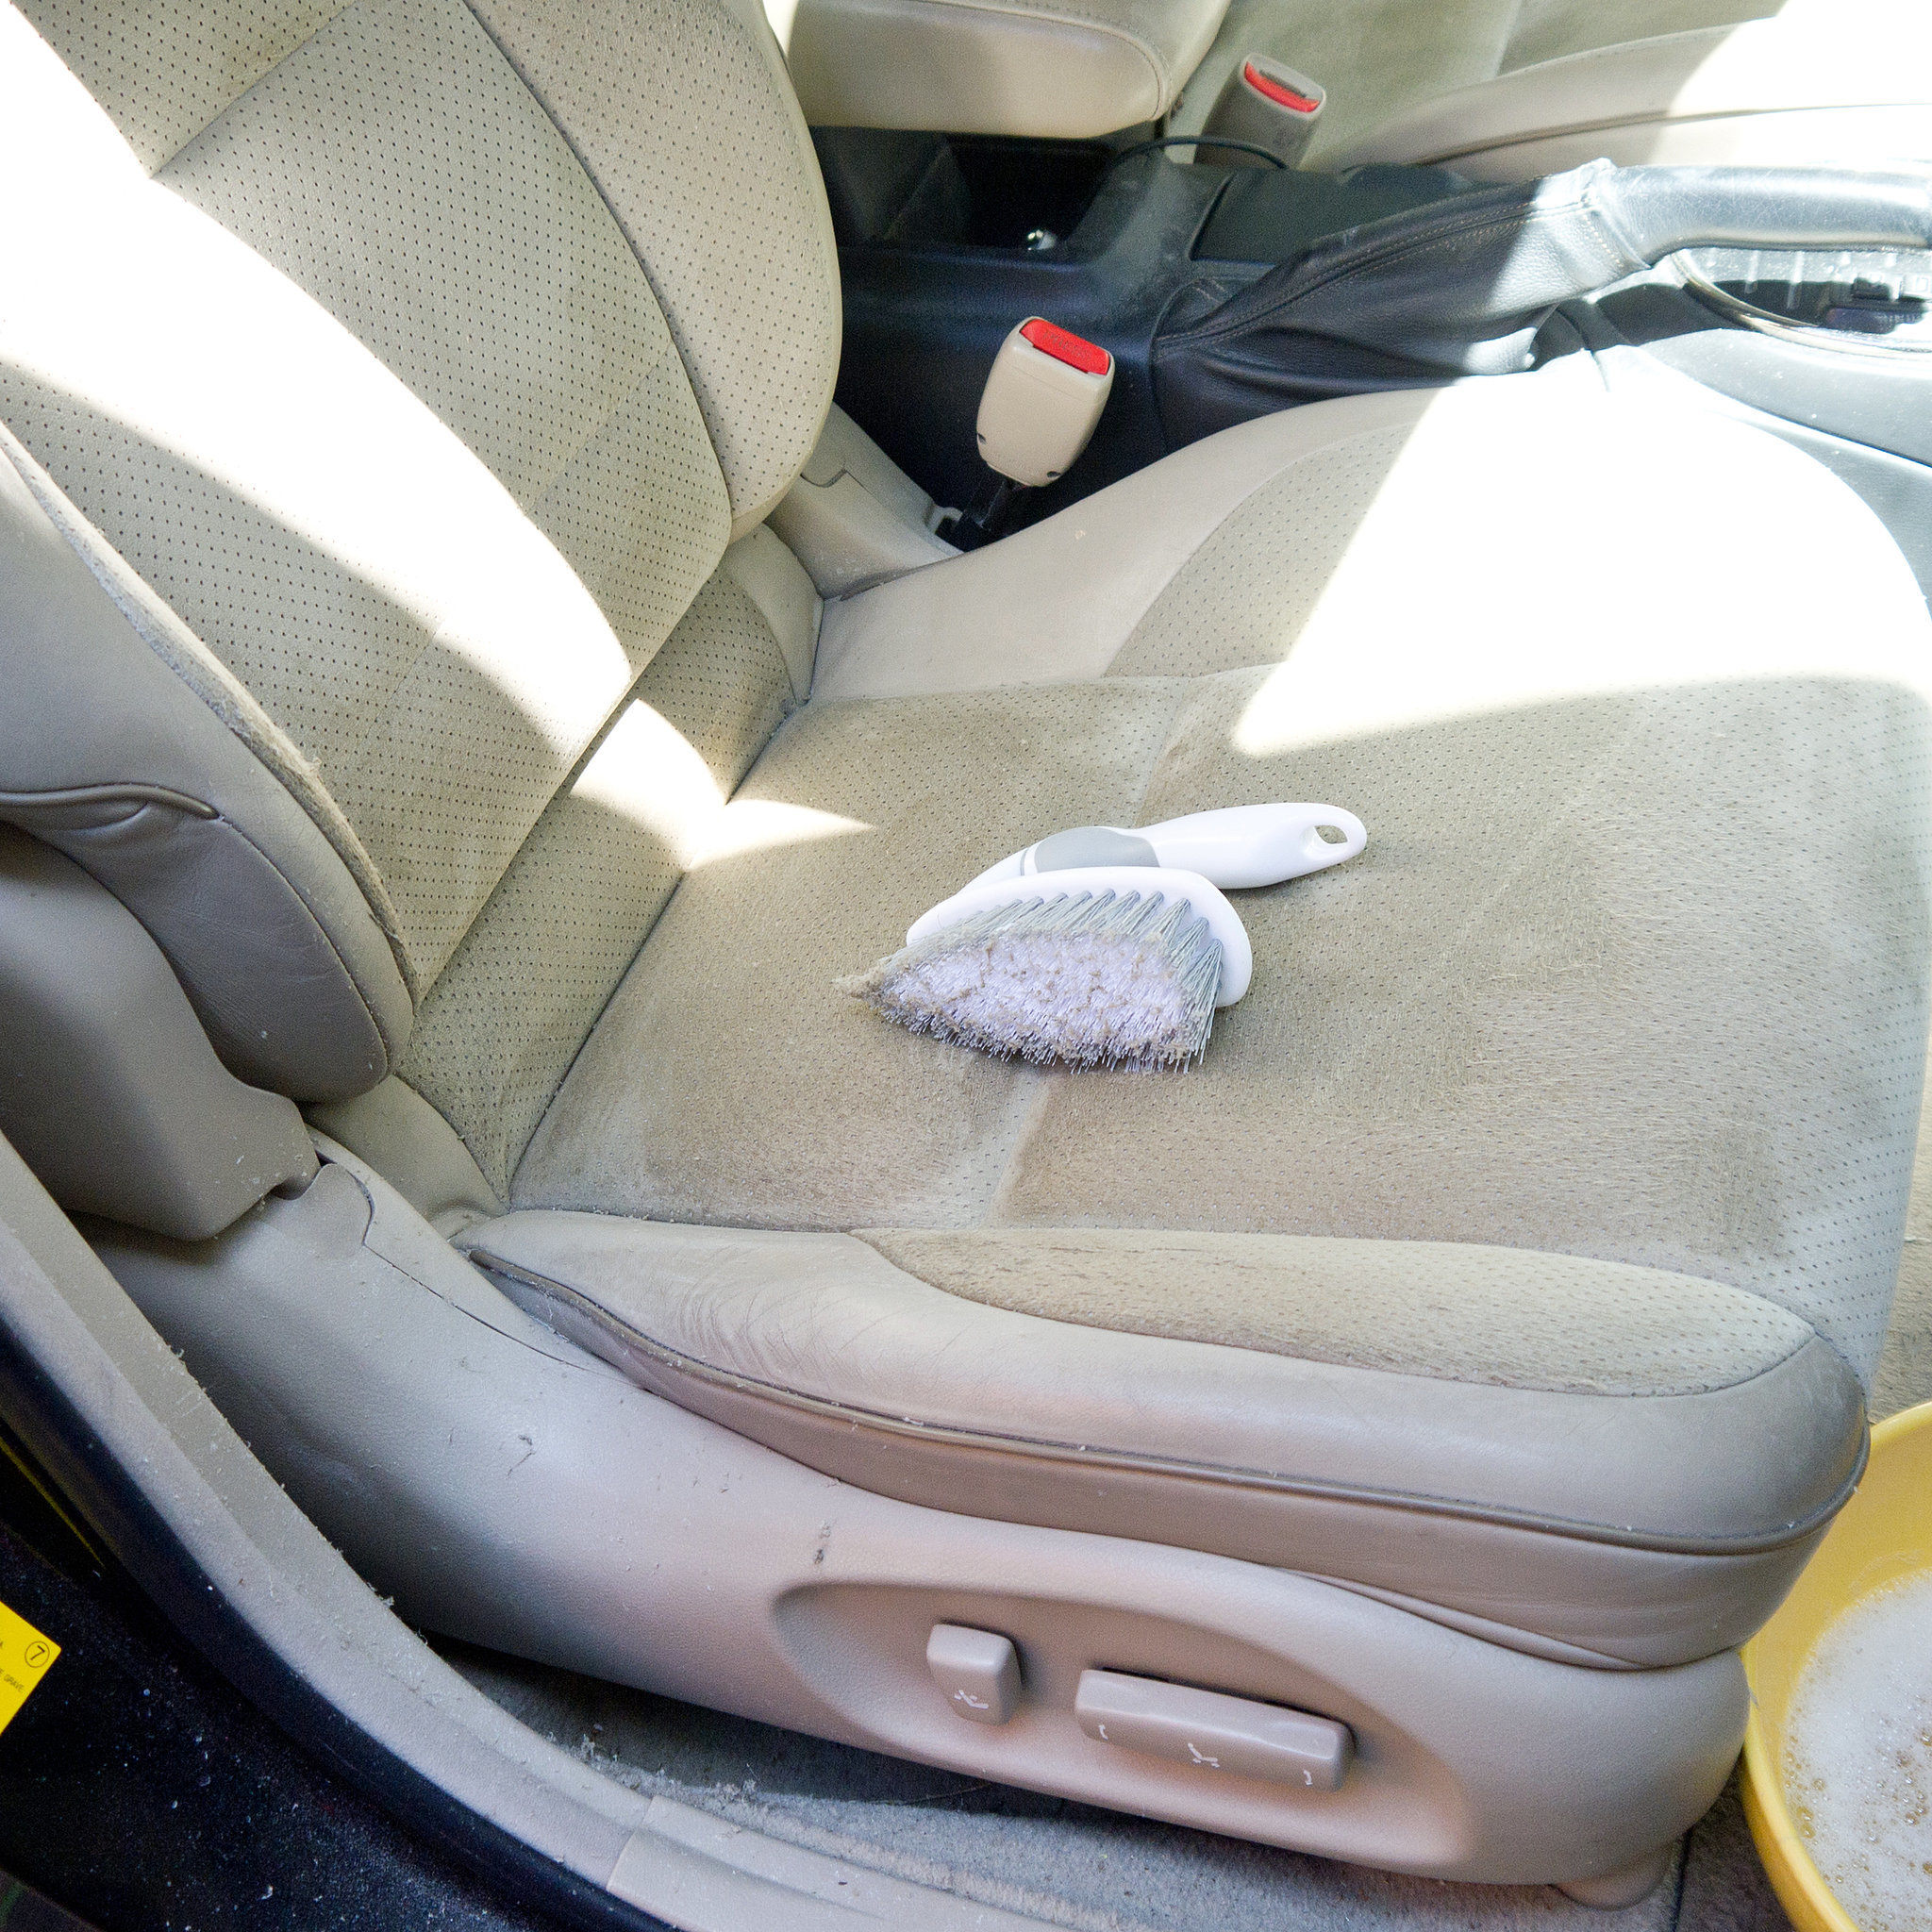 How to clean car seats popsugar smart living solutioingenieria